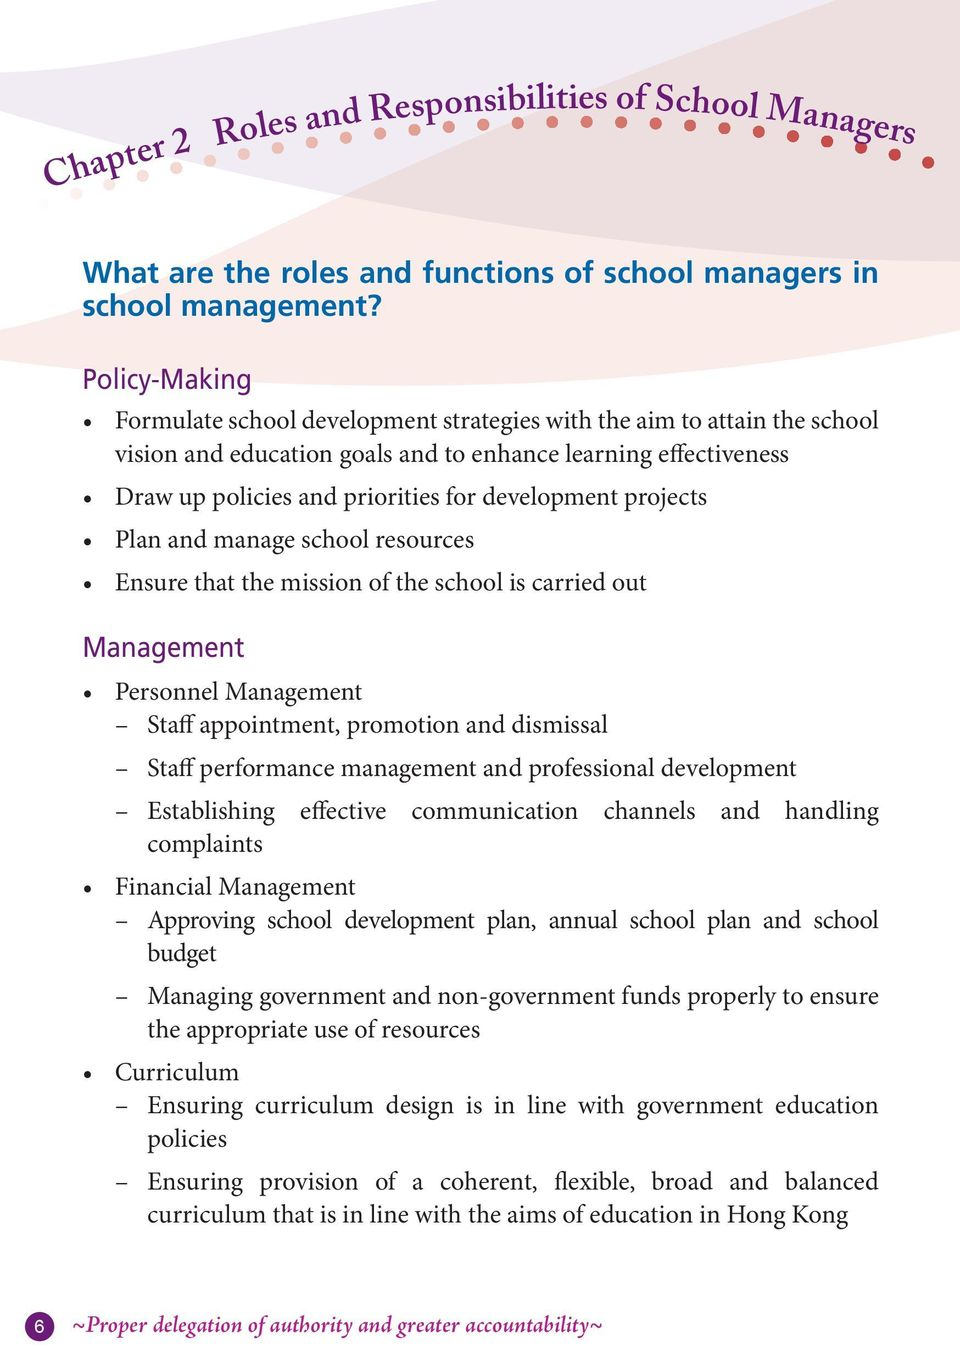 development projects Plan and manage school resources Ensure that the mission of the school is carried out Management Personnel Management Staff appointment, promotion and dismissal Staff performance